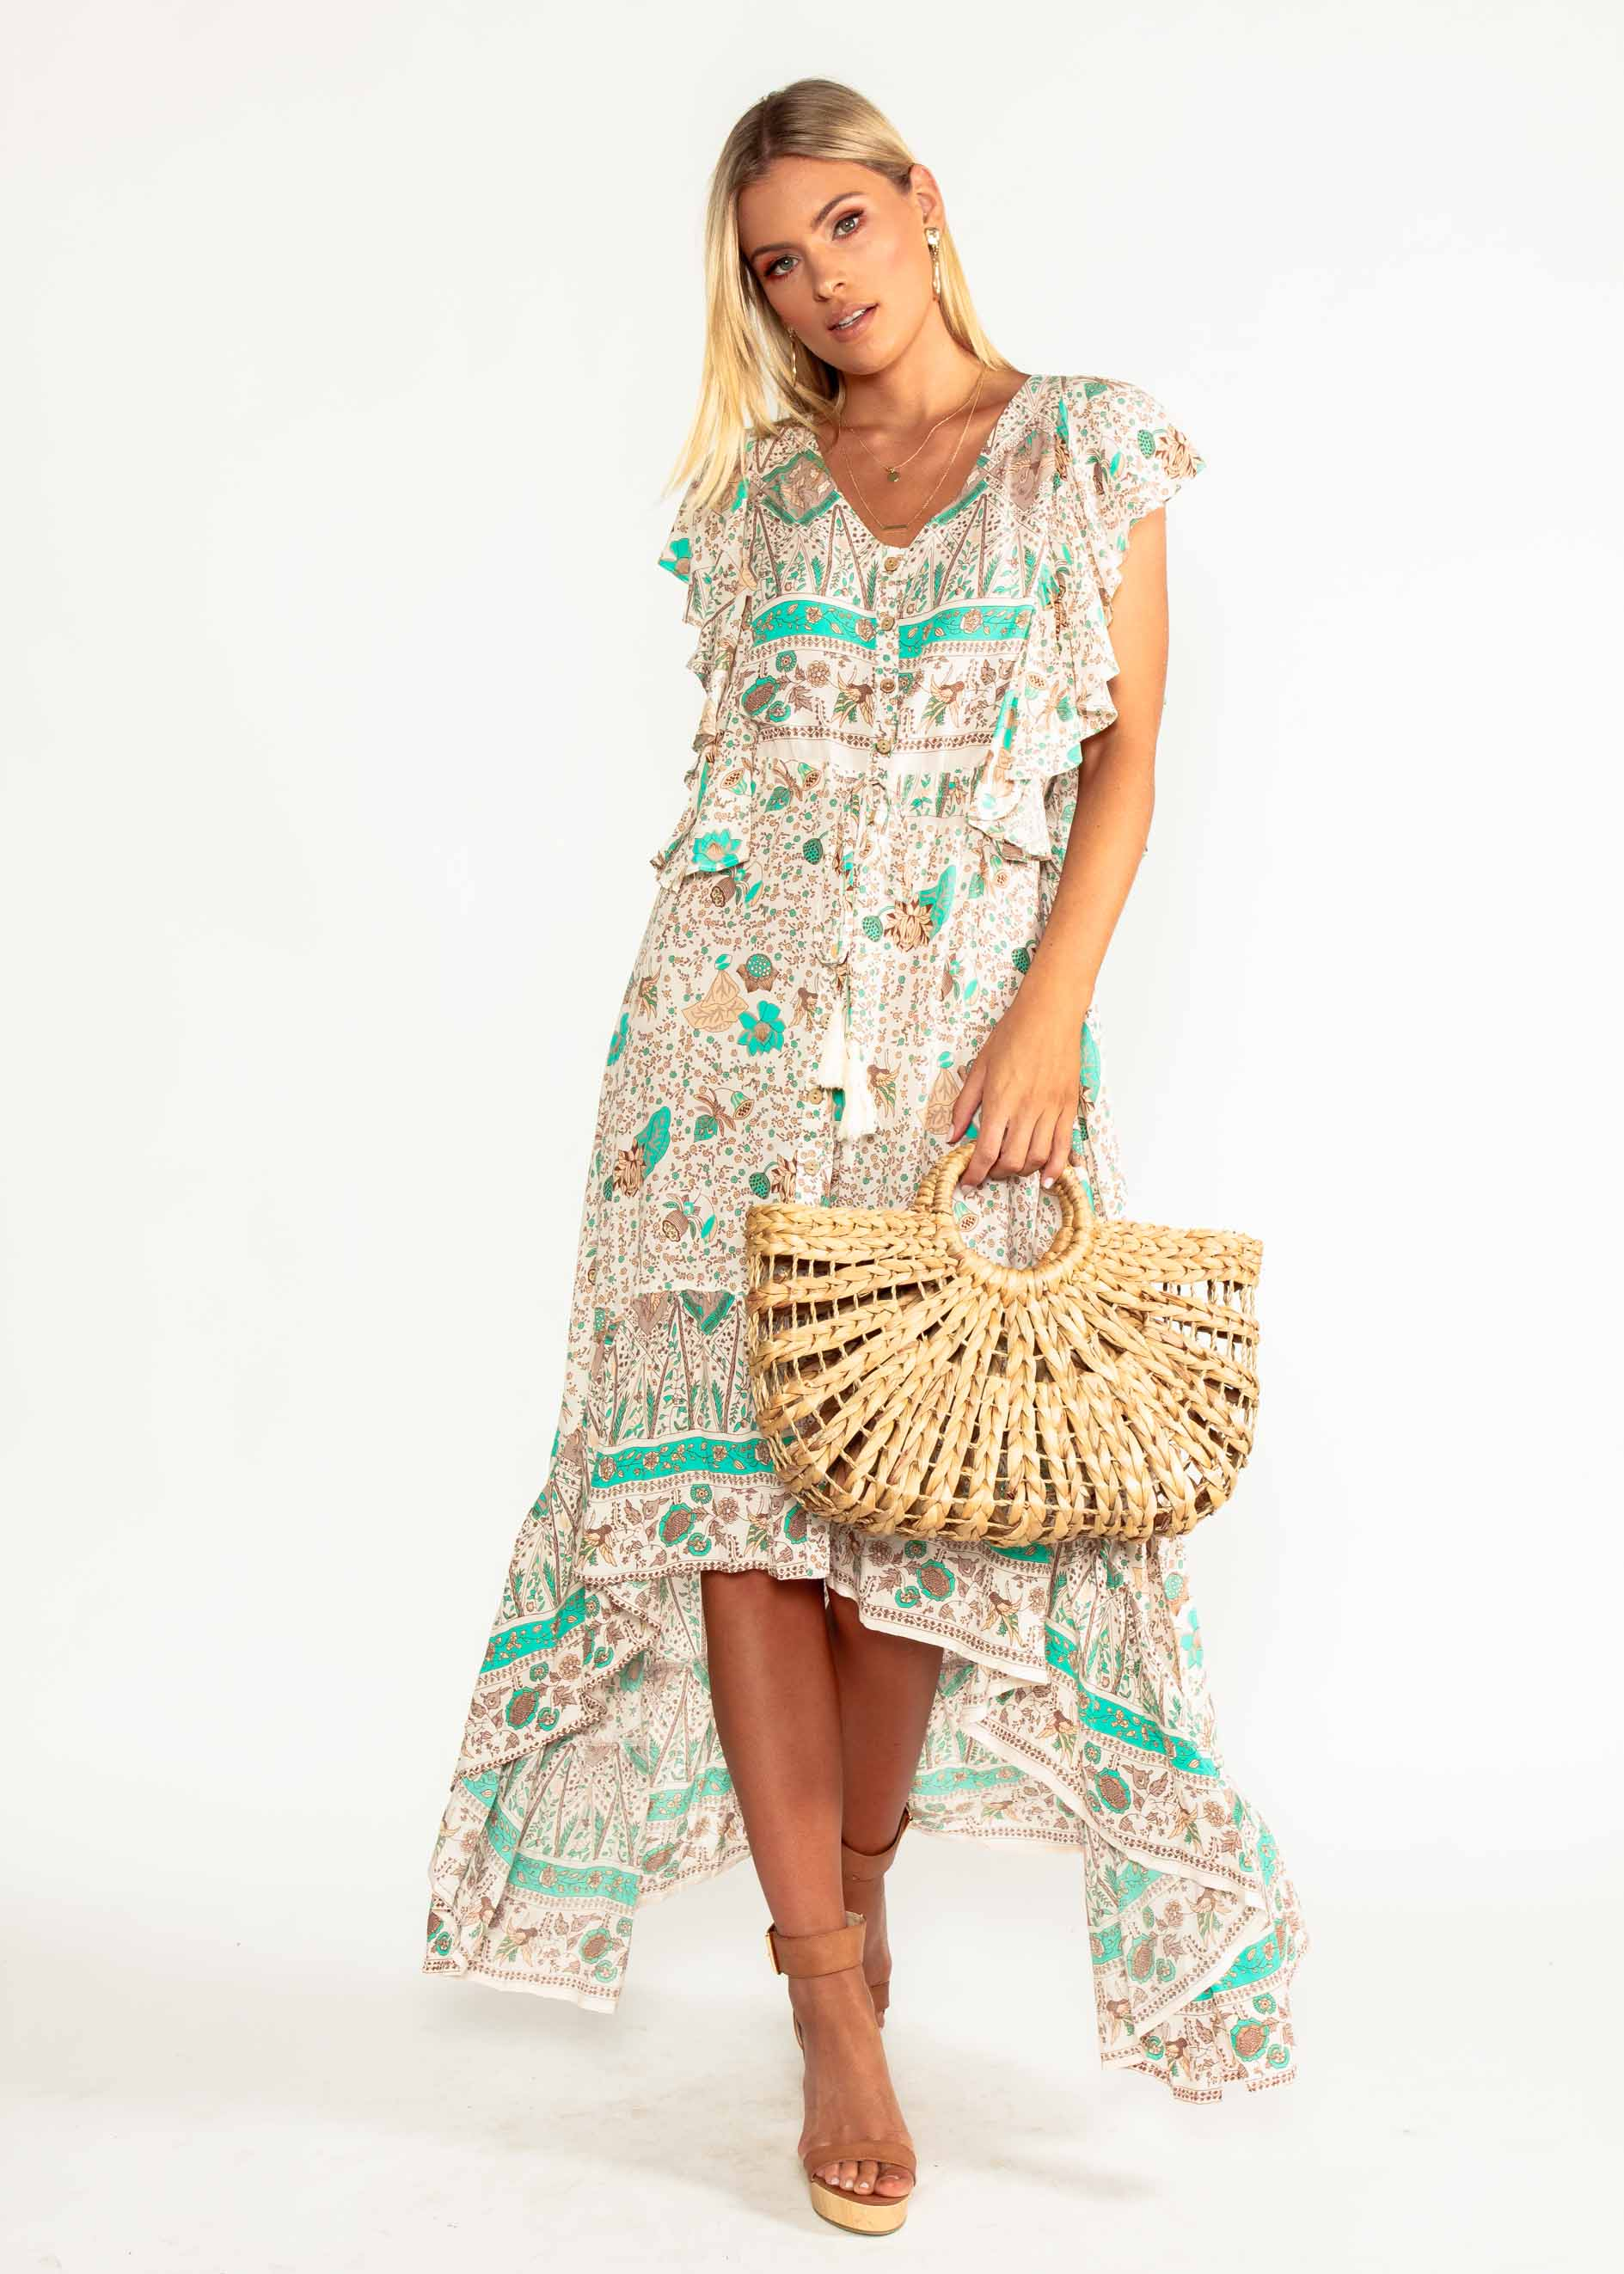 Marley Hi-Lo Maxi Dress - Hummingbird Sage